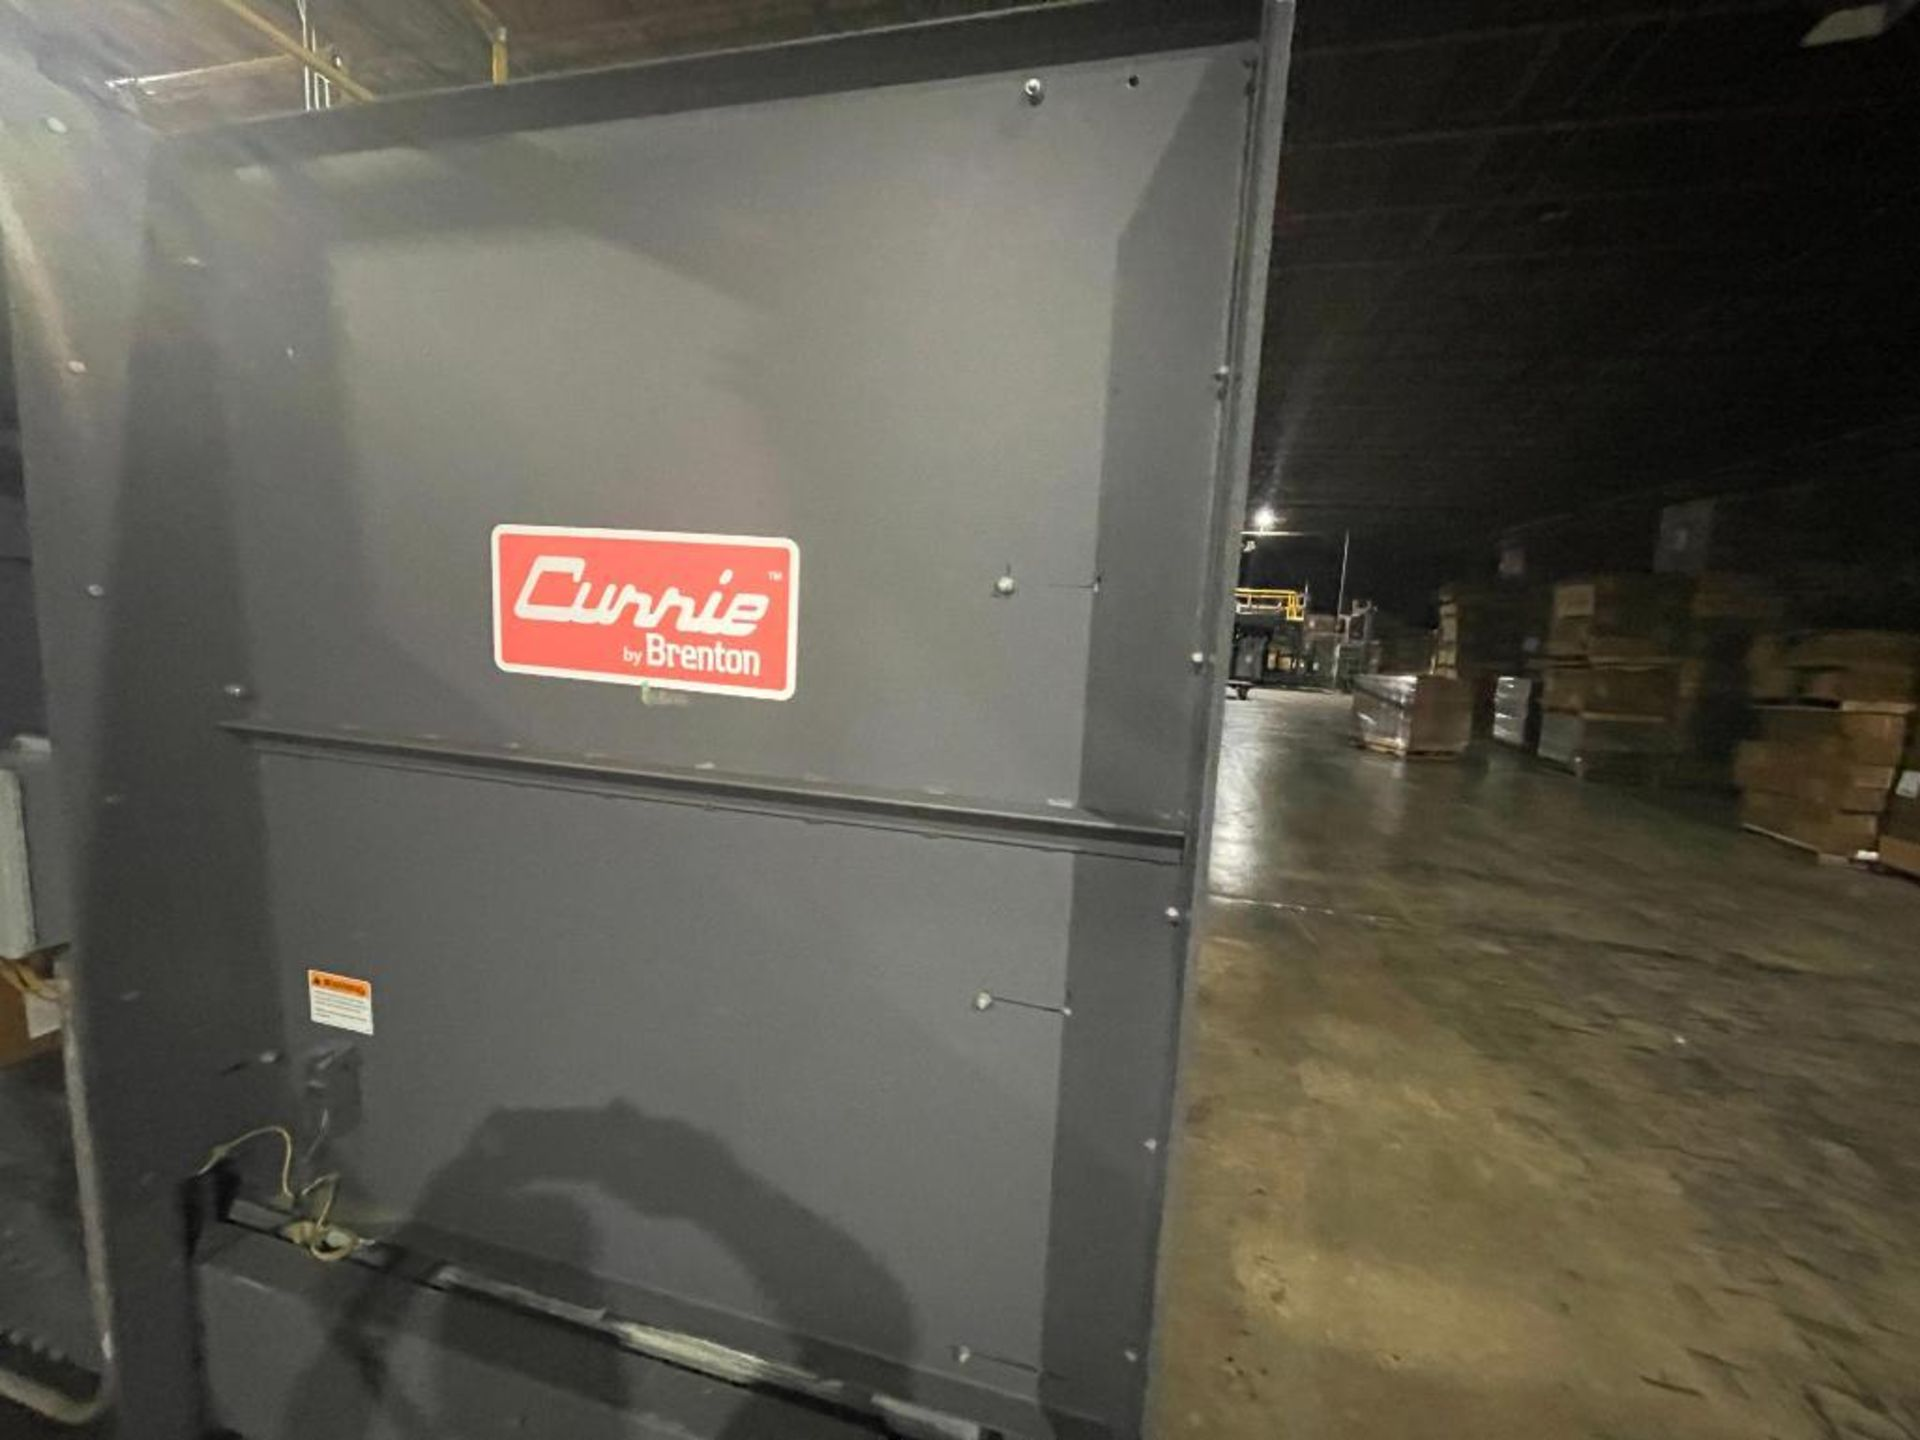 2008 Currie top to bottom palletizer, model PALLETIZER, sn 3348 - Image 4 of 28